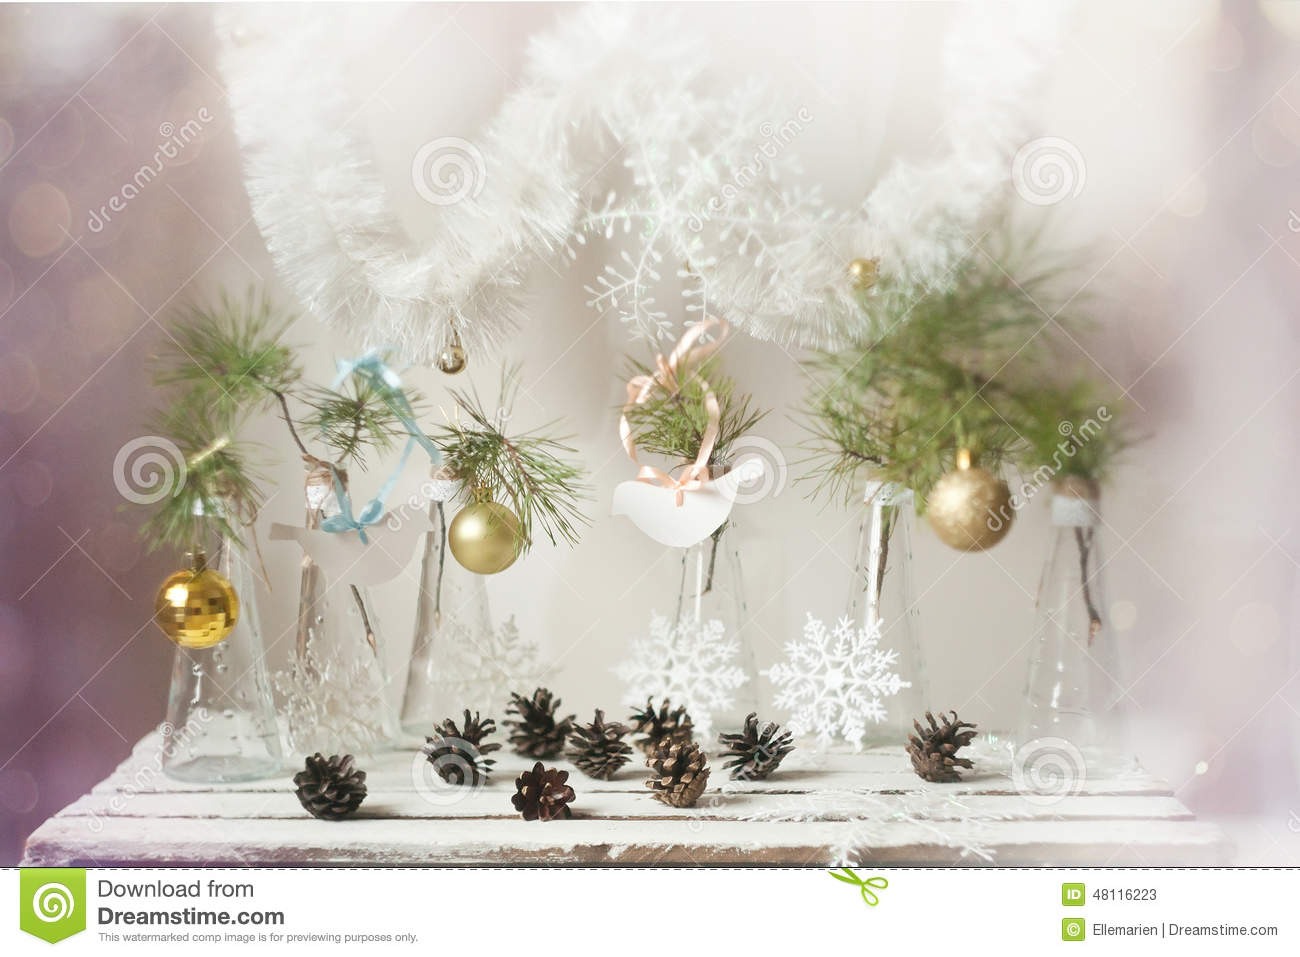 Gold Bird Christmas Tree Decorations : Christmas decorations on a branch of tree in glass vases